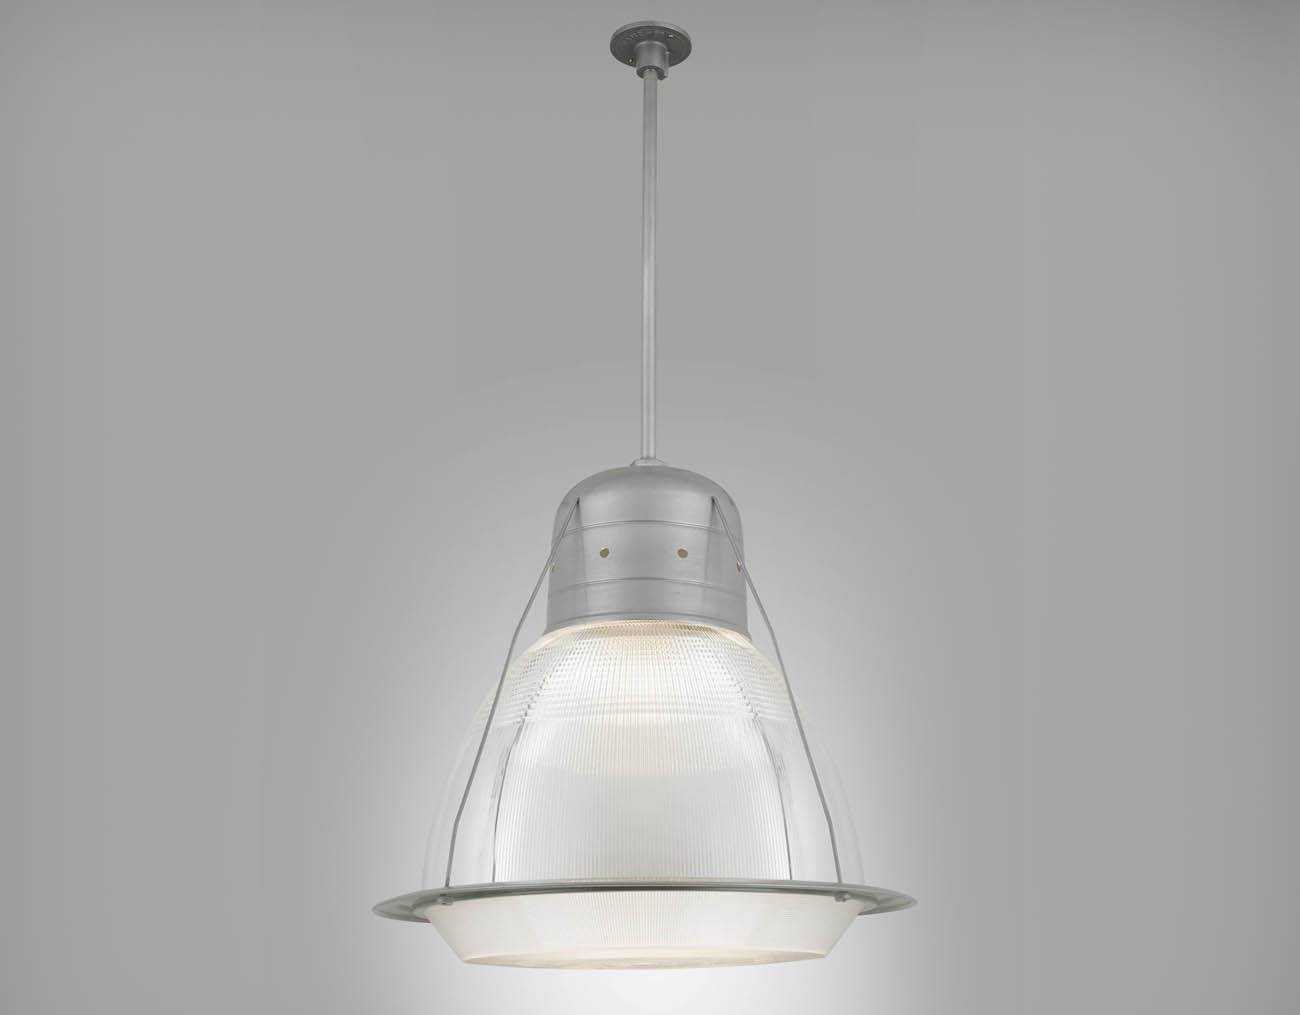 Pendant Light Fixtures For Commercial Settings | Aries Sun within Commercial Hanging Lights Fixtures (Image 13 of 15)